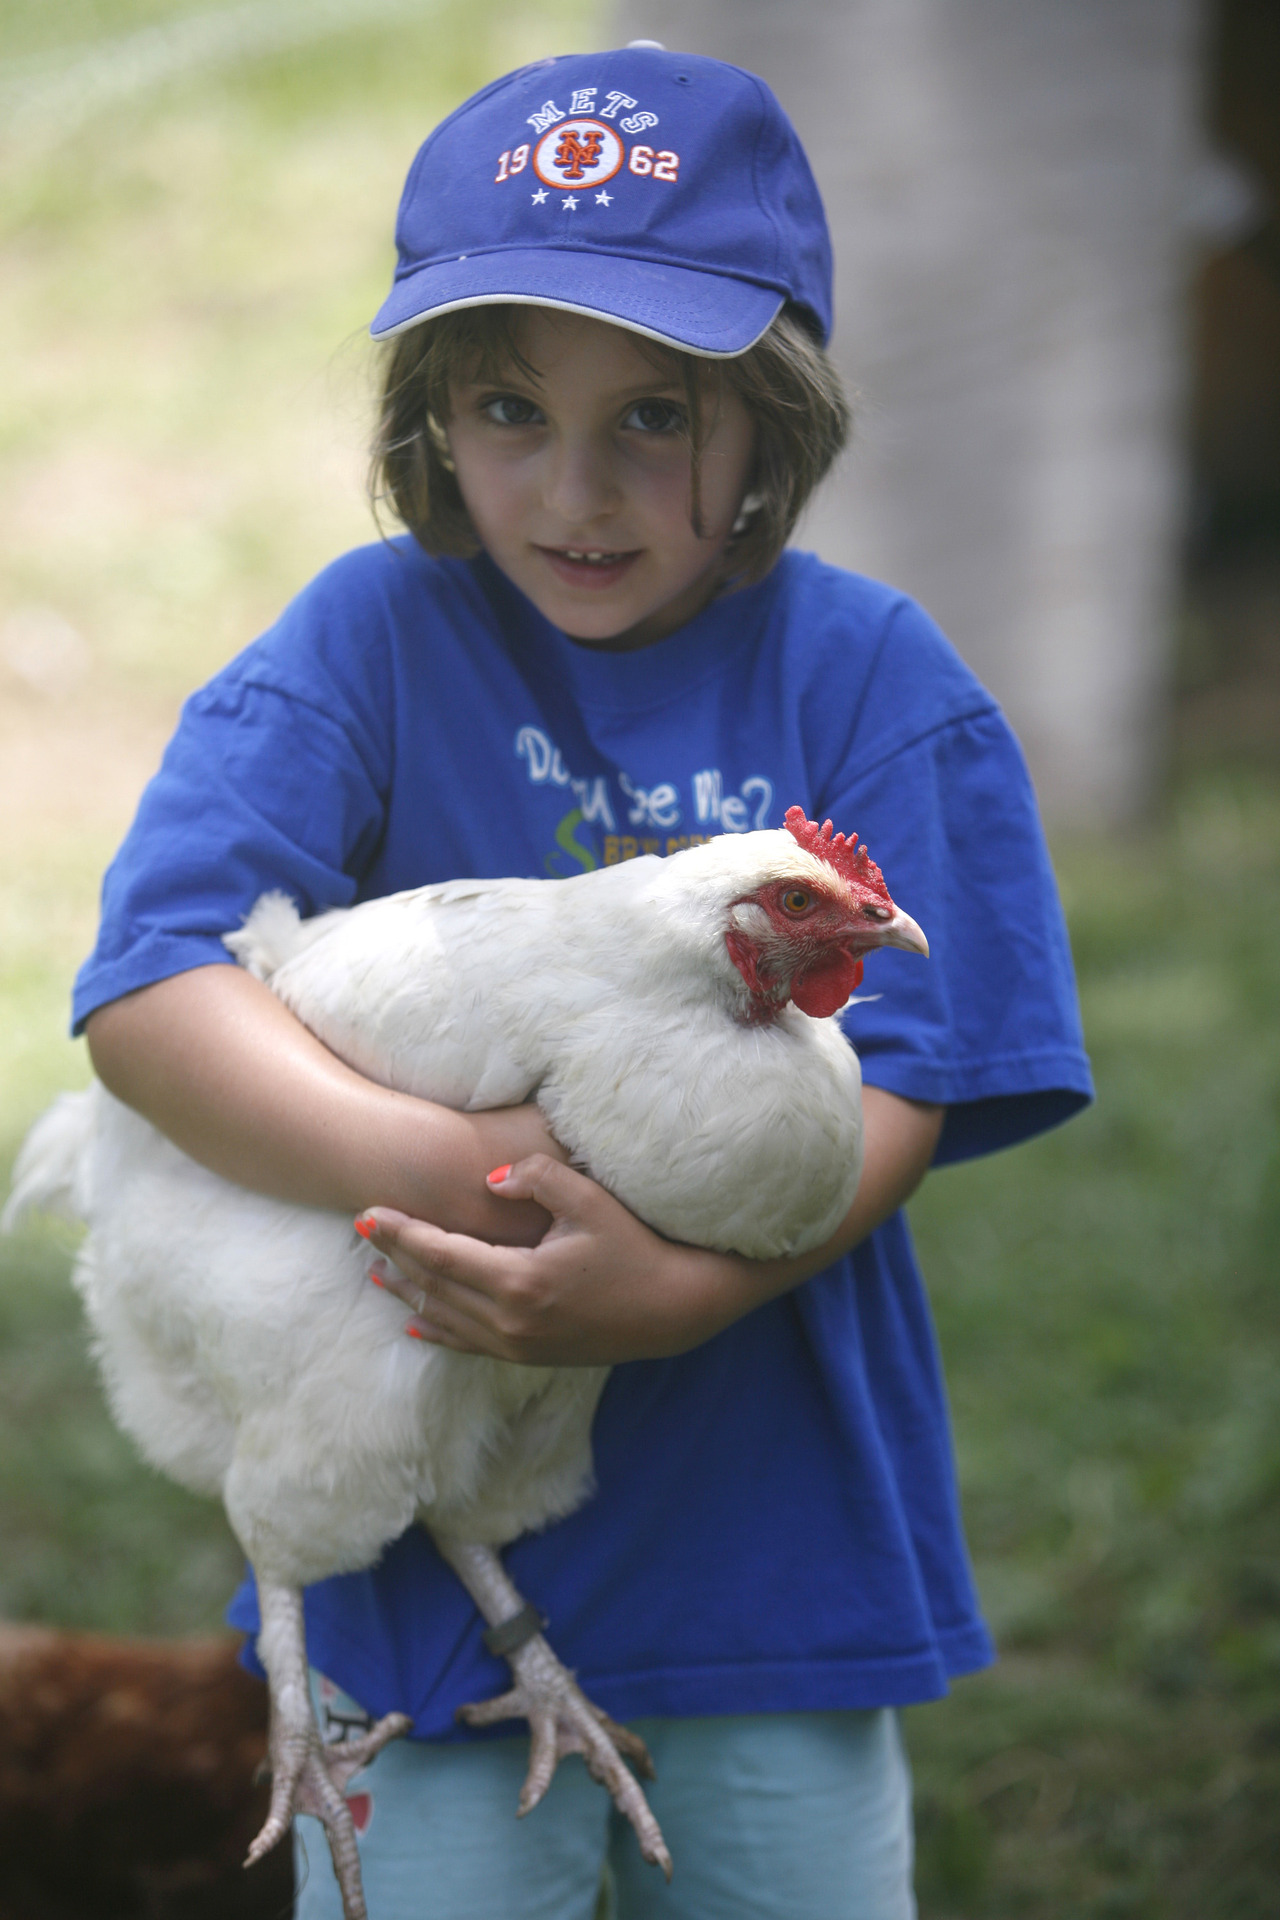 Isabel Stafford of Katonah holds a chicken at John Jay Homestead's Independence Day celebration July 4, 2013. Isabel volunteers at Intergenerate Heritage Egg Co-Op. (Dave Gershgorn/ The Journal News)